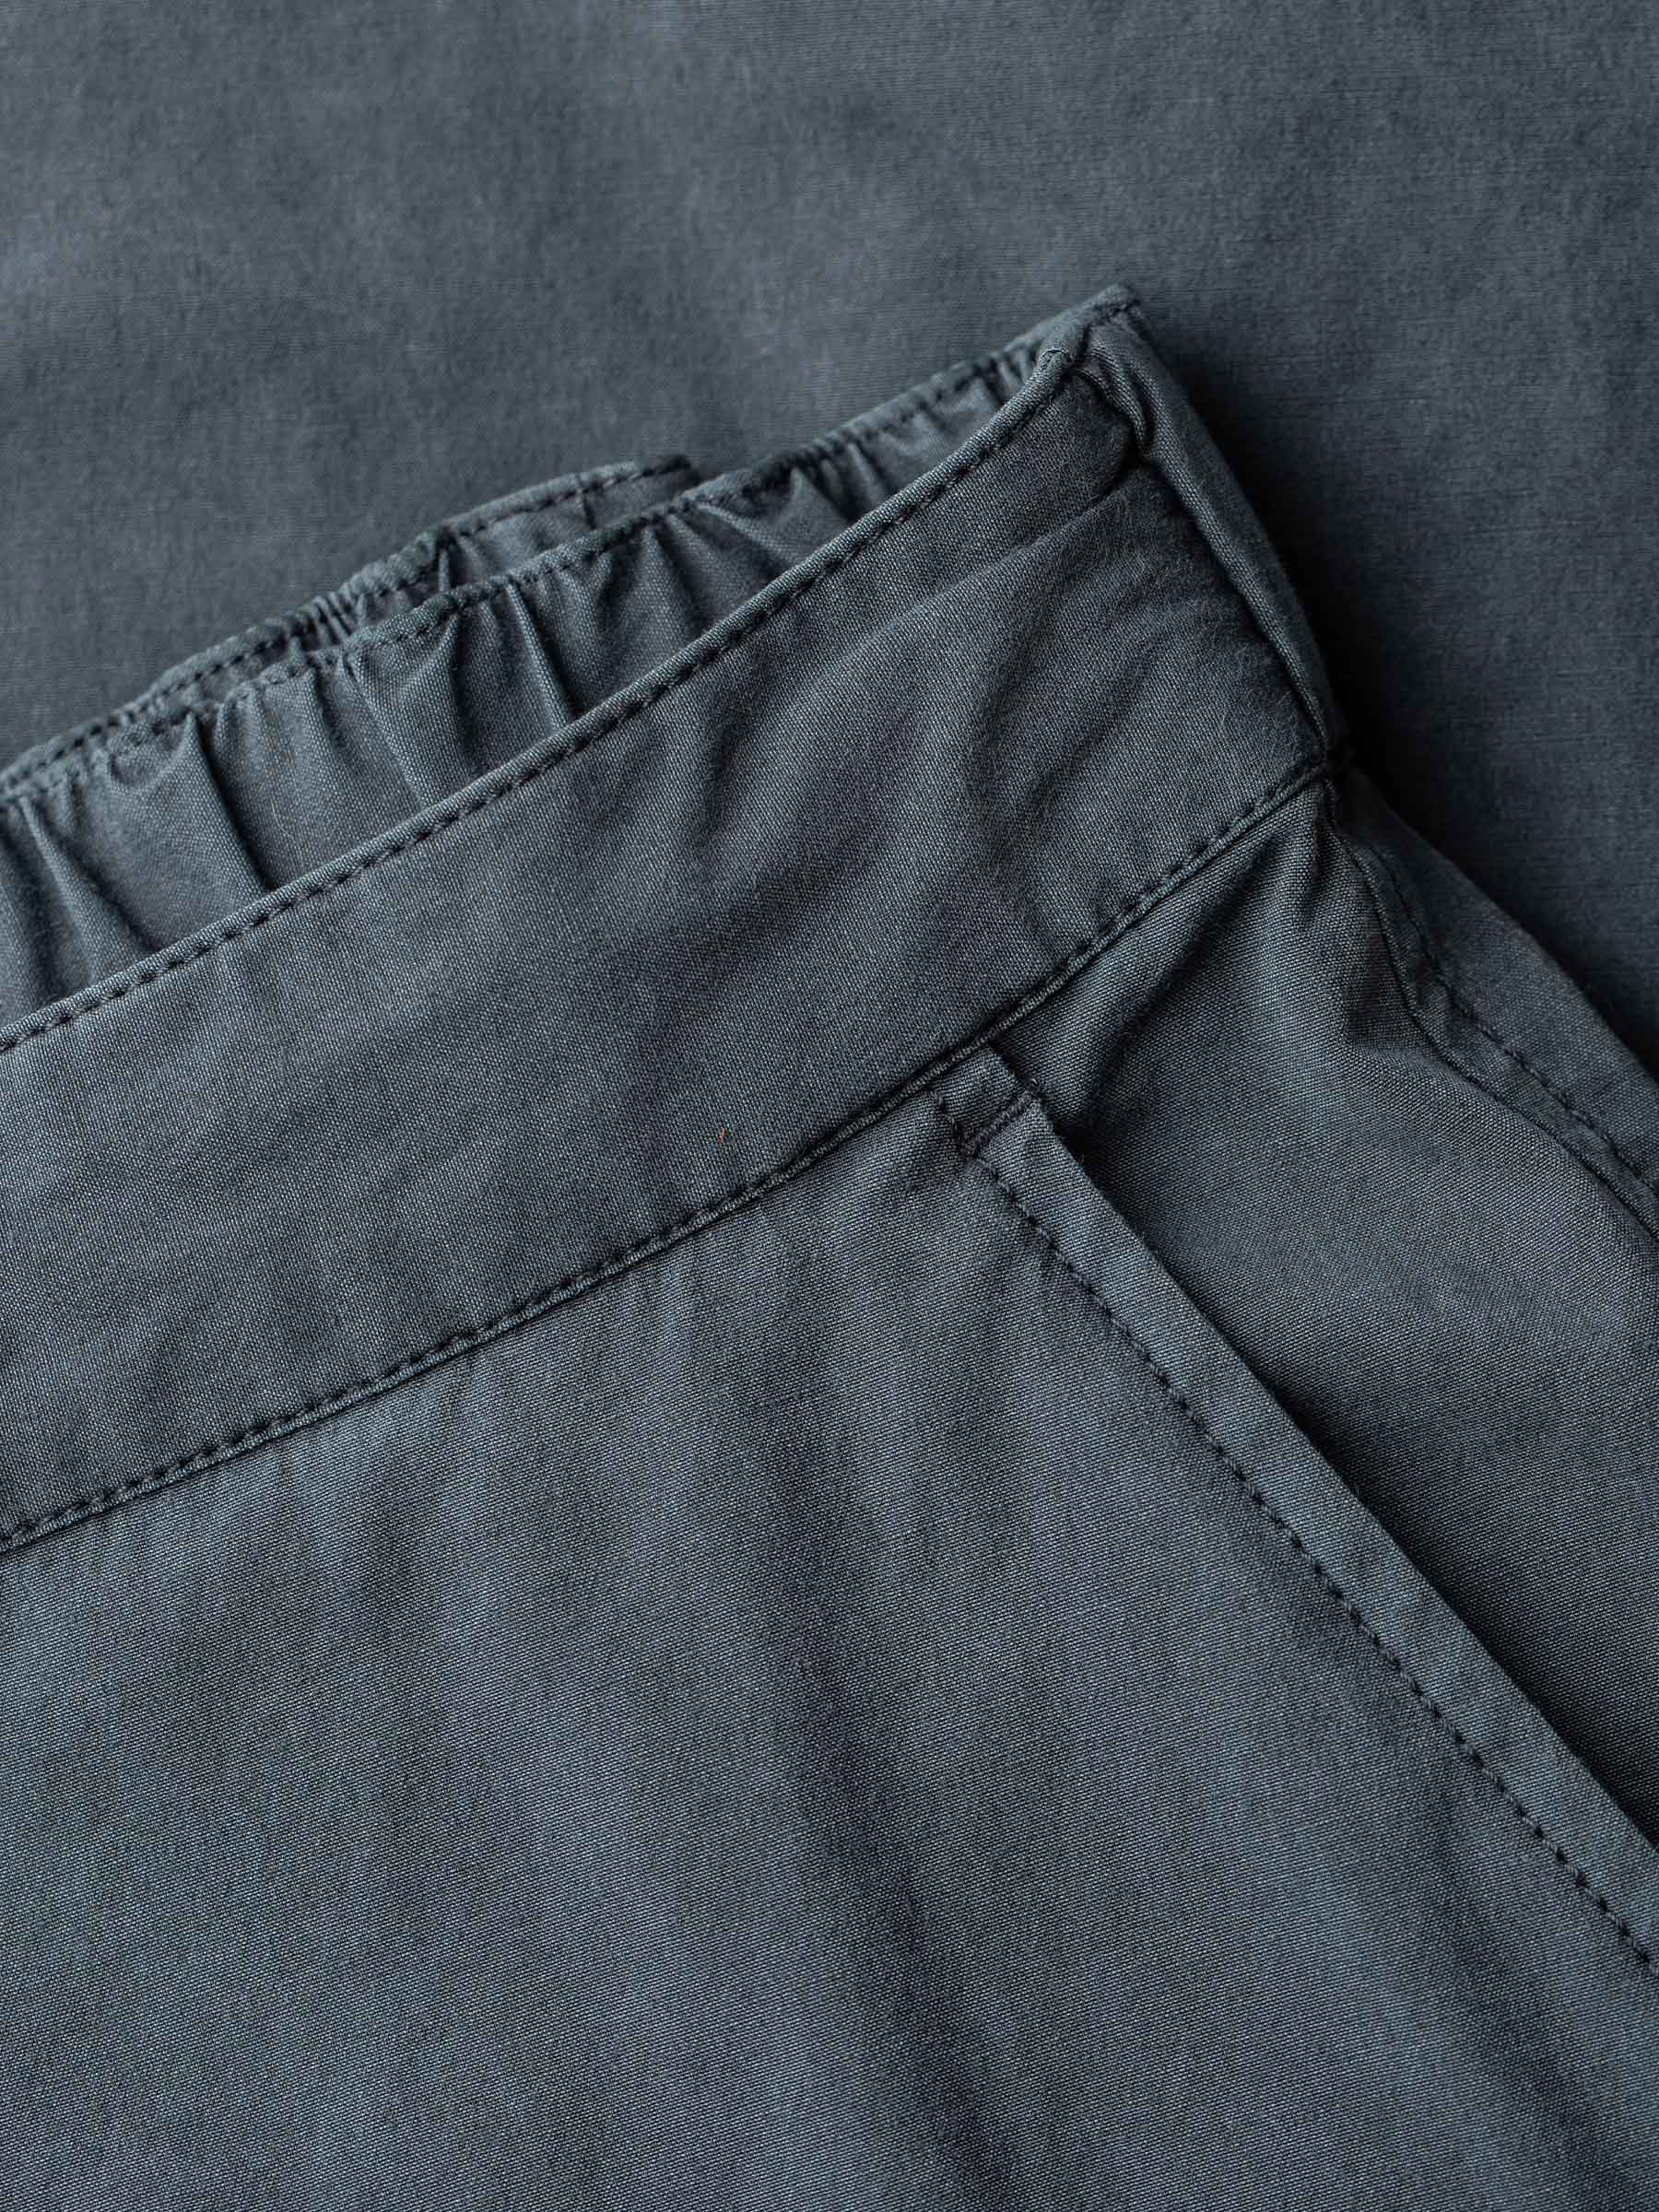 Buck Mason - Vintage Black Deck Short